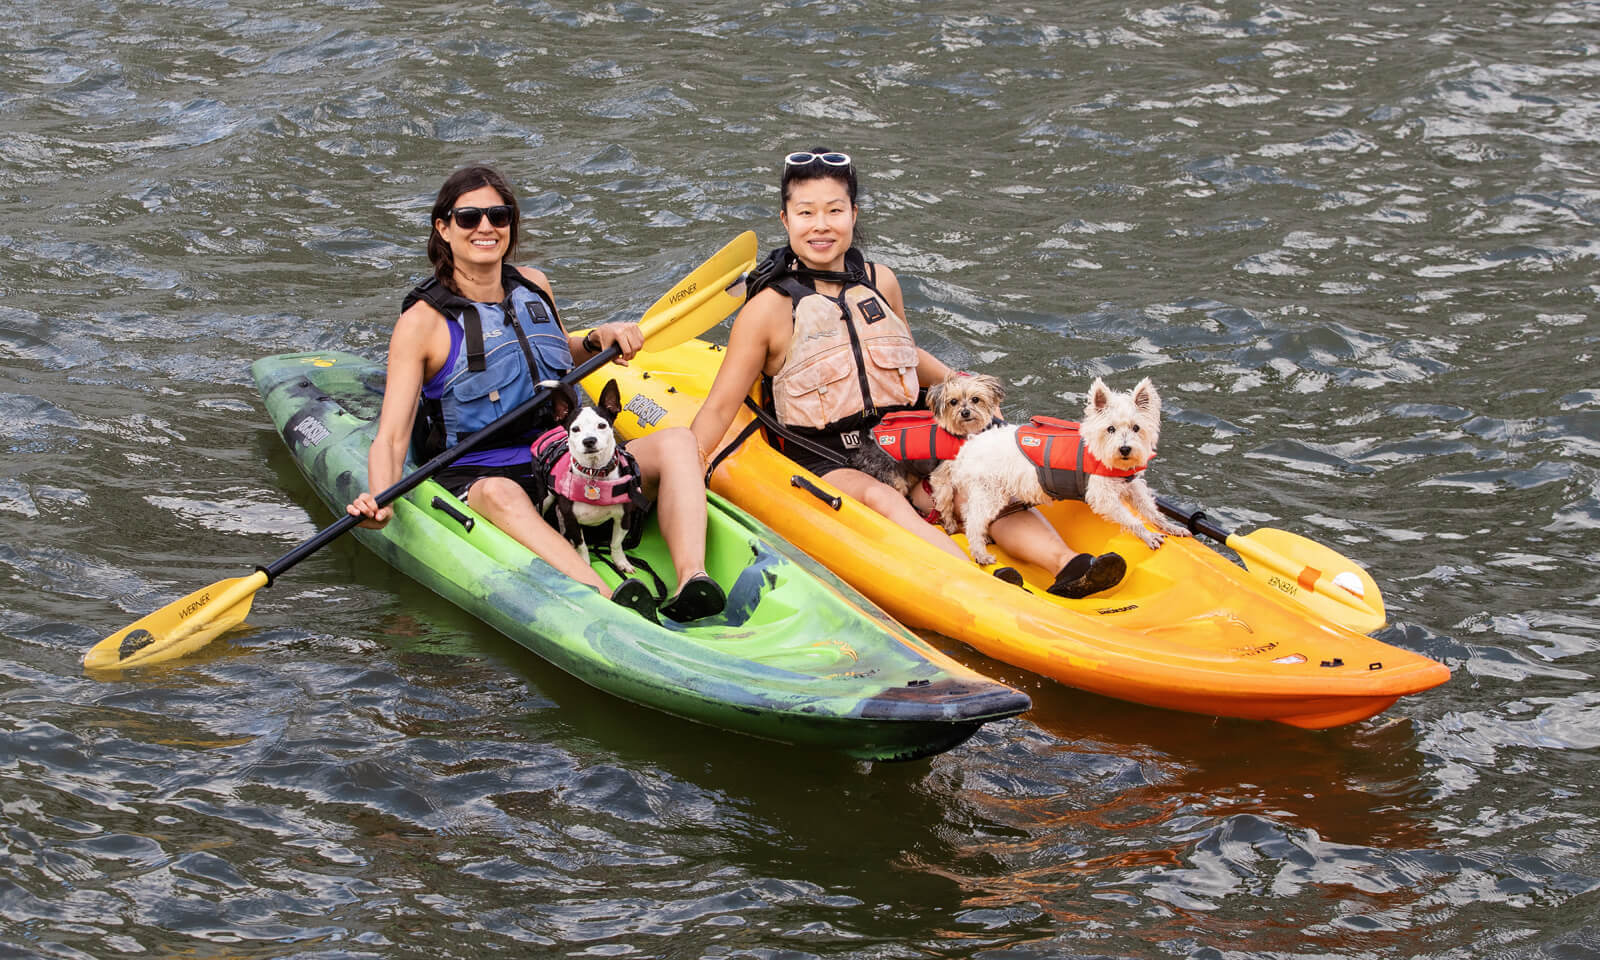 Two people kayaking with 2 dogs